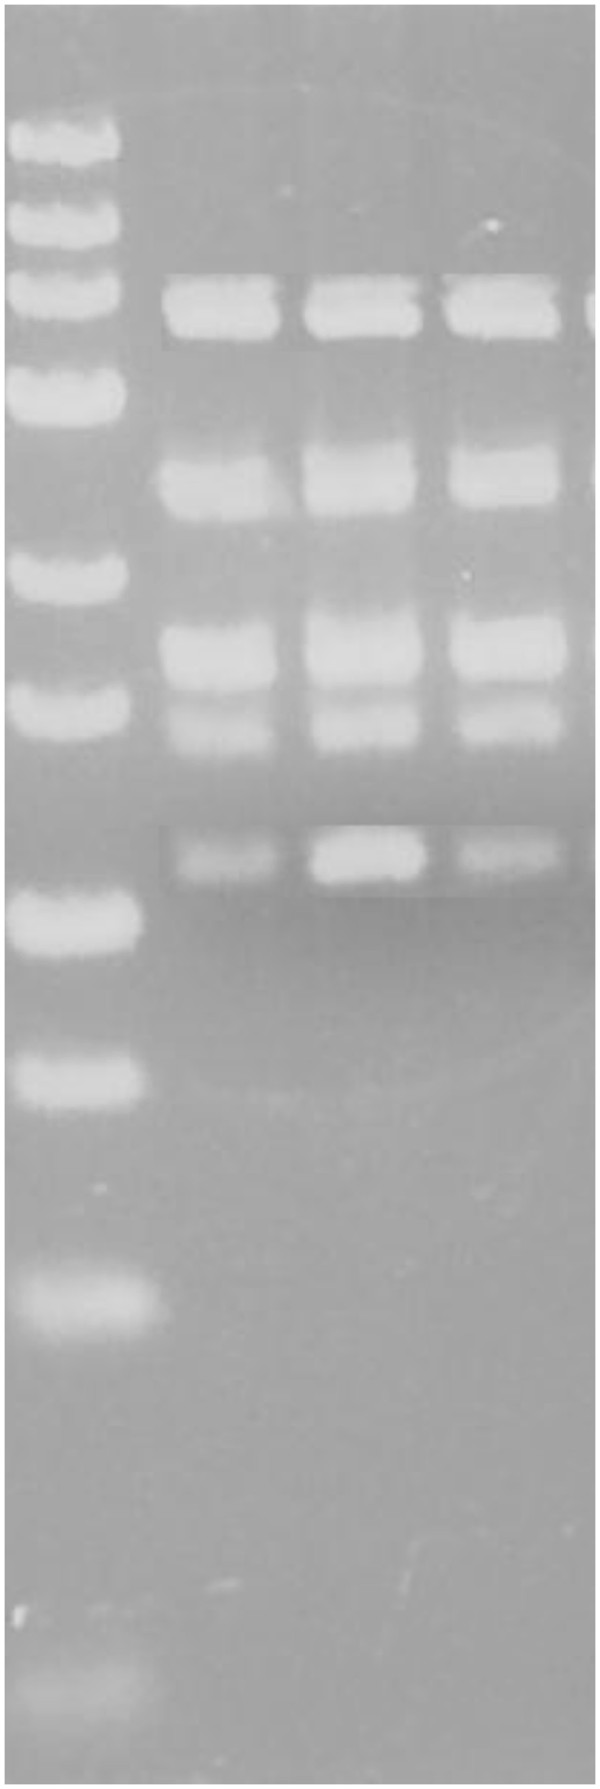 Agarose gel with PCR–RFLP products for analysis of MTHFR 677 C > T and eNOS +894 G > T and eNOS −786 T > C . Lane 1 contains <t>Fermentas</t> O' GeneRuler® Ultra Low Range DNA Ladder (25 bp - 700 bp); Lanes 2, 3 and 4 contain multiplex PCR-RFLP products digested with 1 U of NEB® BanII restriction enzyme (NEB®, England), 1 U Fermentas Fast Digest® HinfI restriction enzyme (Fermentas, Lithuania) and 1 U Fermentas Fast Digest® <t>MspI</t> restriction enzyme (Fermentas, Lithuania), respectively. The band sizes were 371 bp, 248 bp, 178 bp, 130 bp and 118 bp for all lanes. This indicates that the sample is a TT genotype for MTHFR 677 C > T, GG genotype for eNOS +894 G > T , and TT genotype for eNOS −786 T > C.